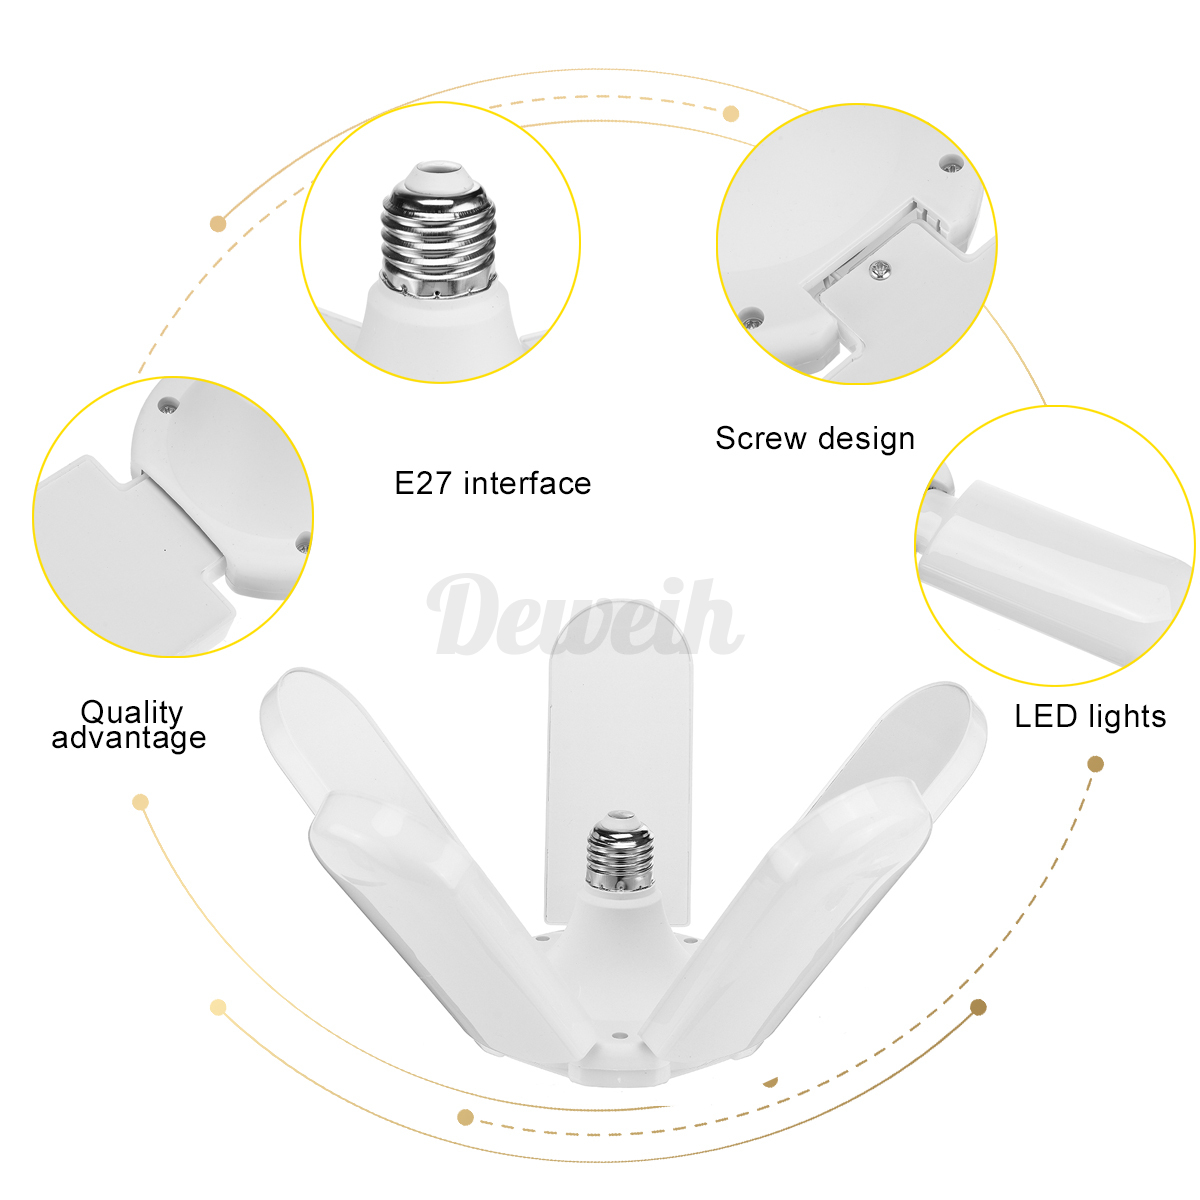 45-60-75W-10000-20000lm-LED-Garage-Shop-Work-Lights-Home-Ceiling-Deformable-Lamp thumbnail 4